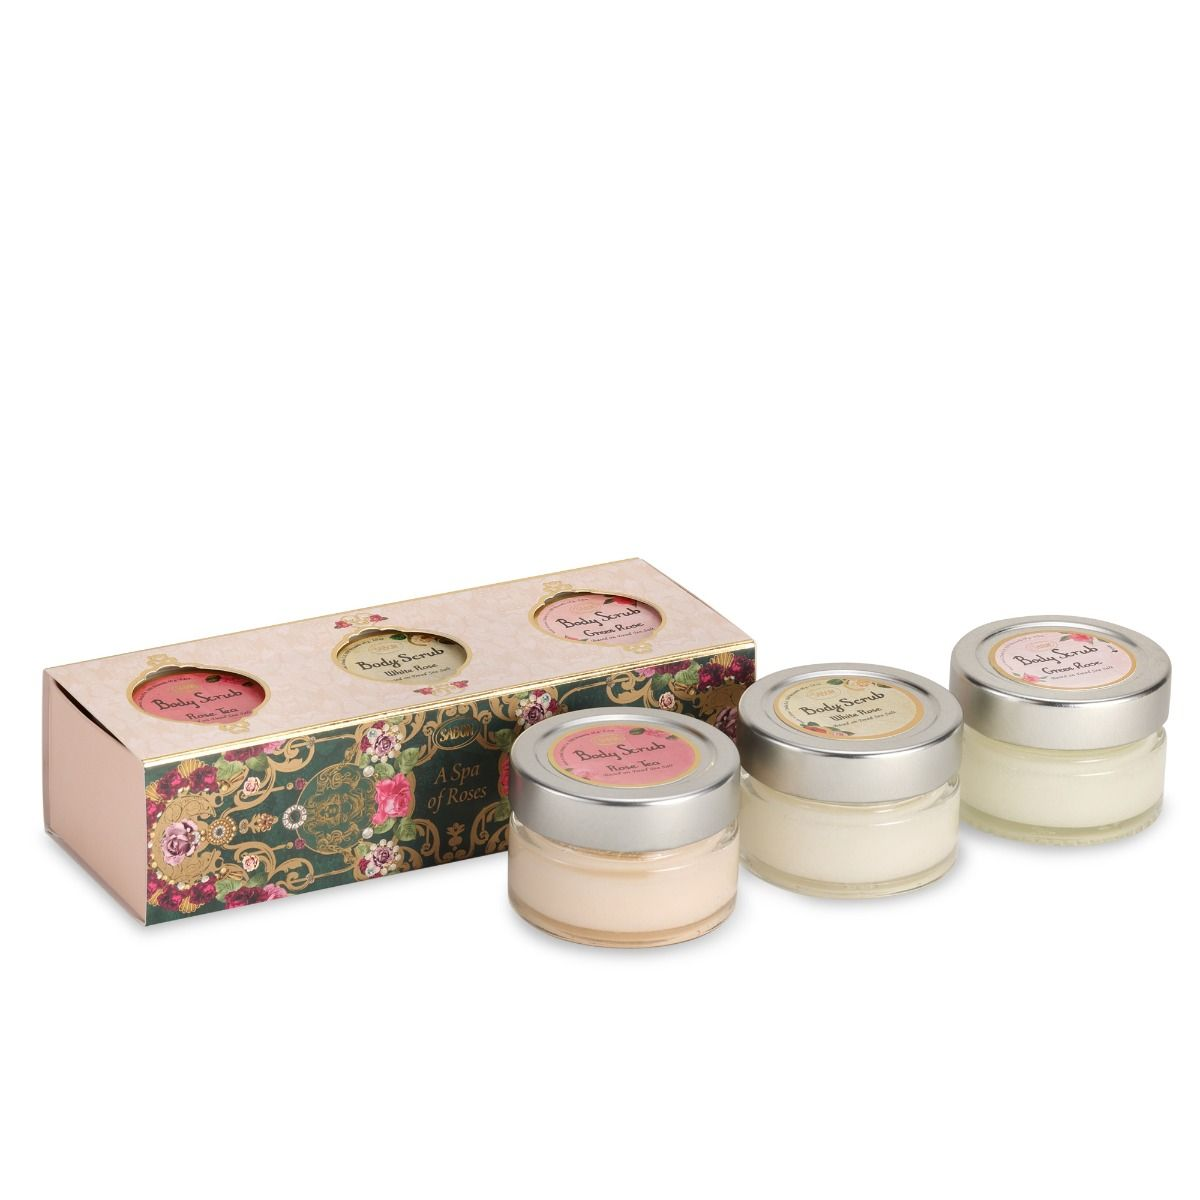 A spa of Roses Gift Set